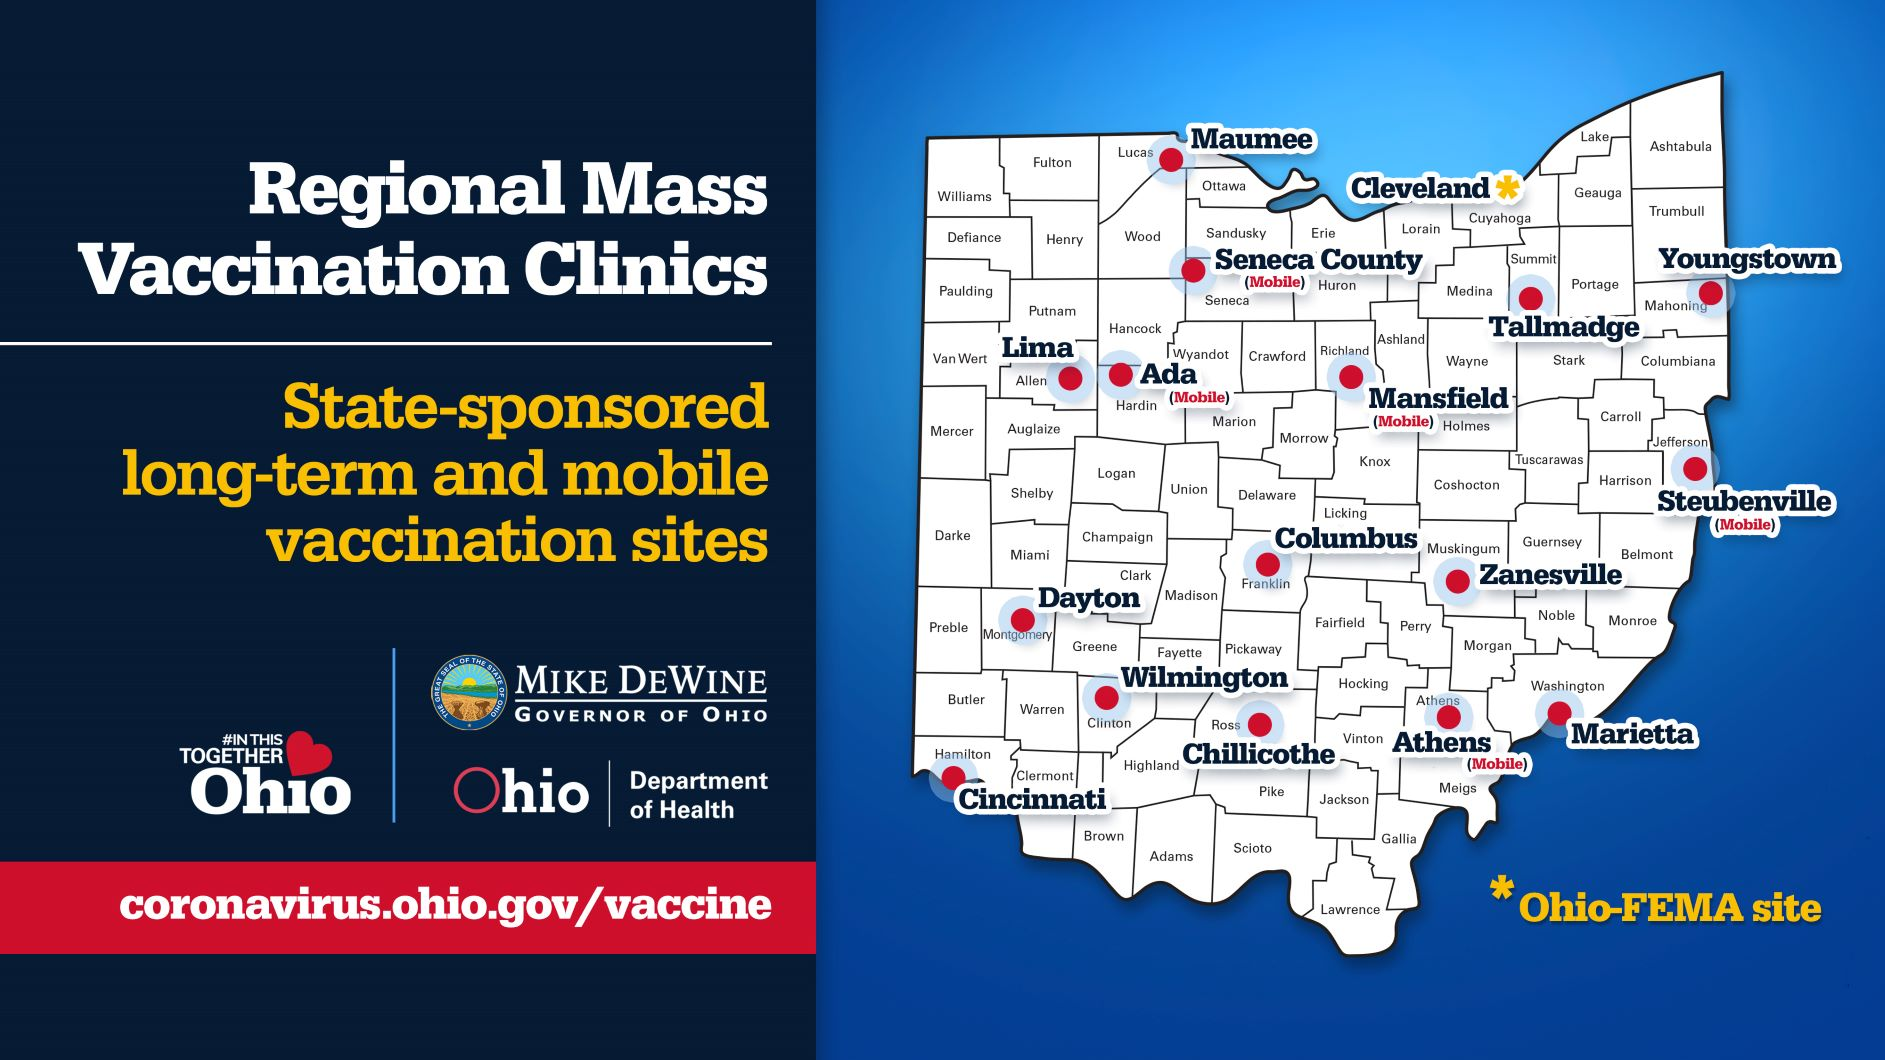 Map of Ohio mass vaccination and mobile clinic locations